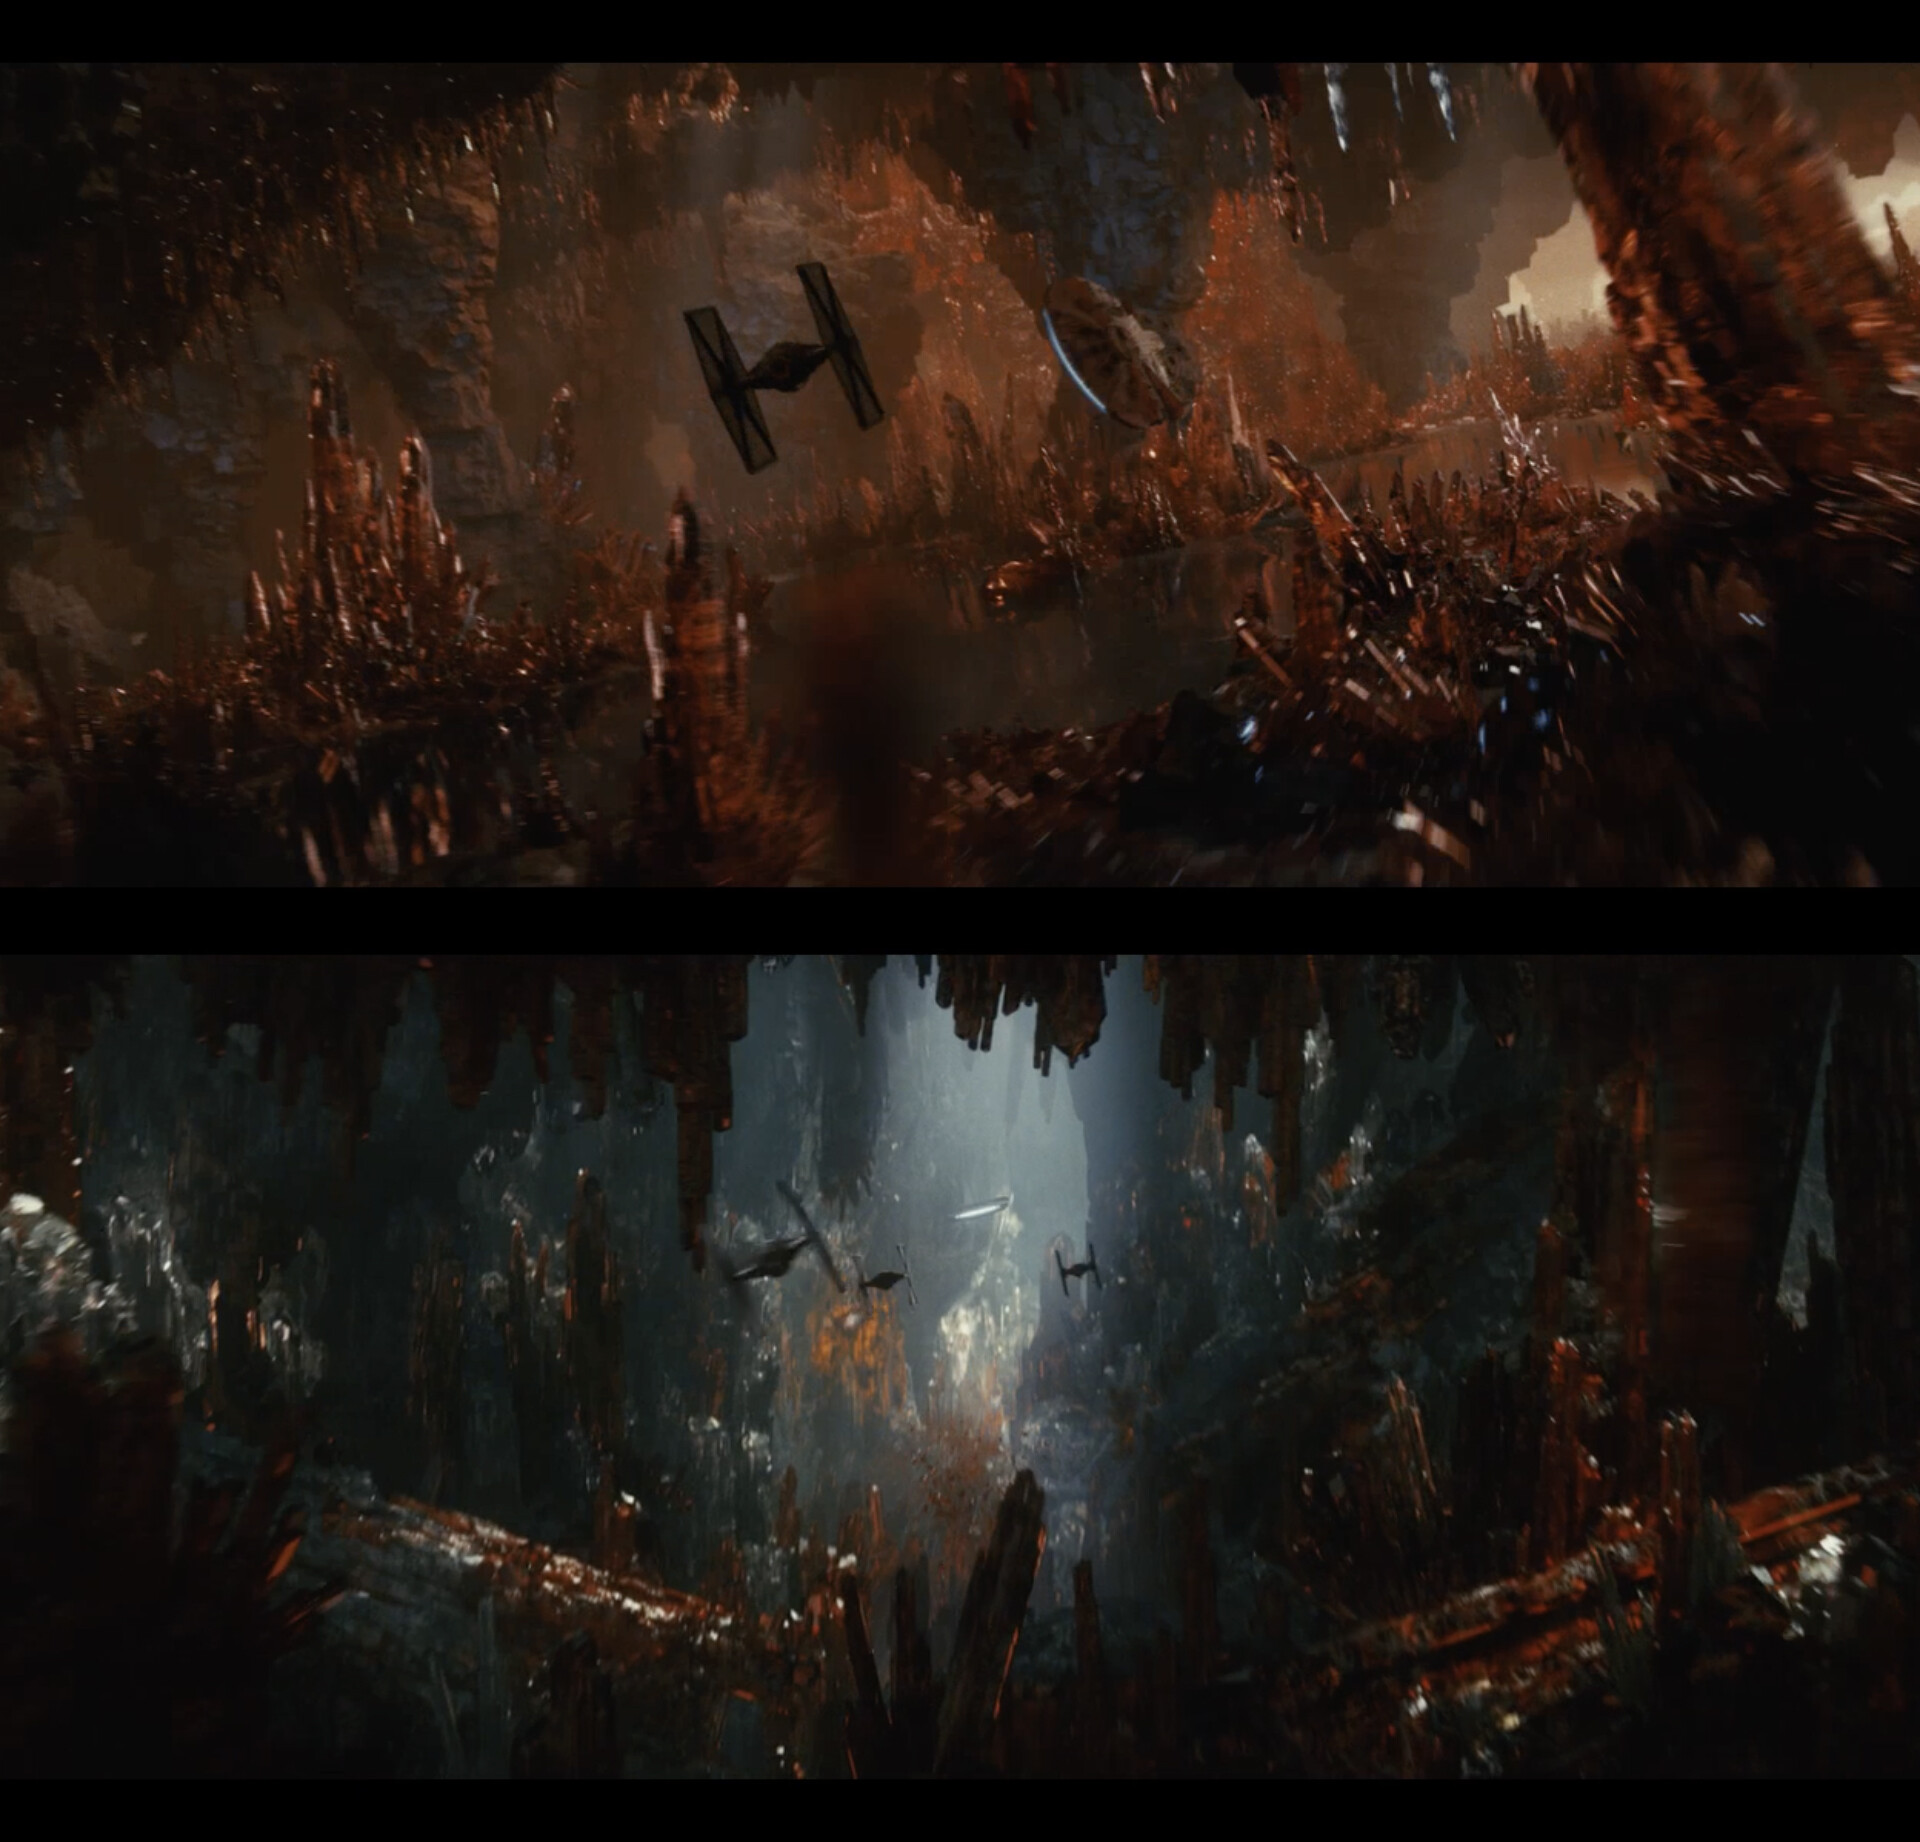 Final movie frames